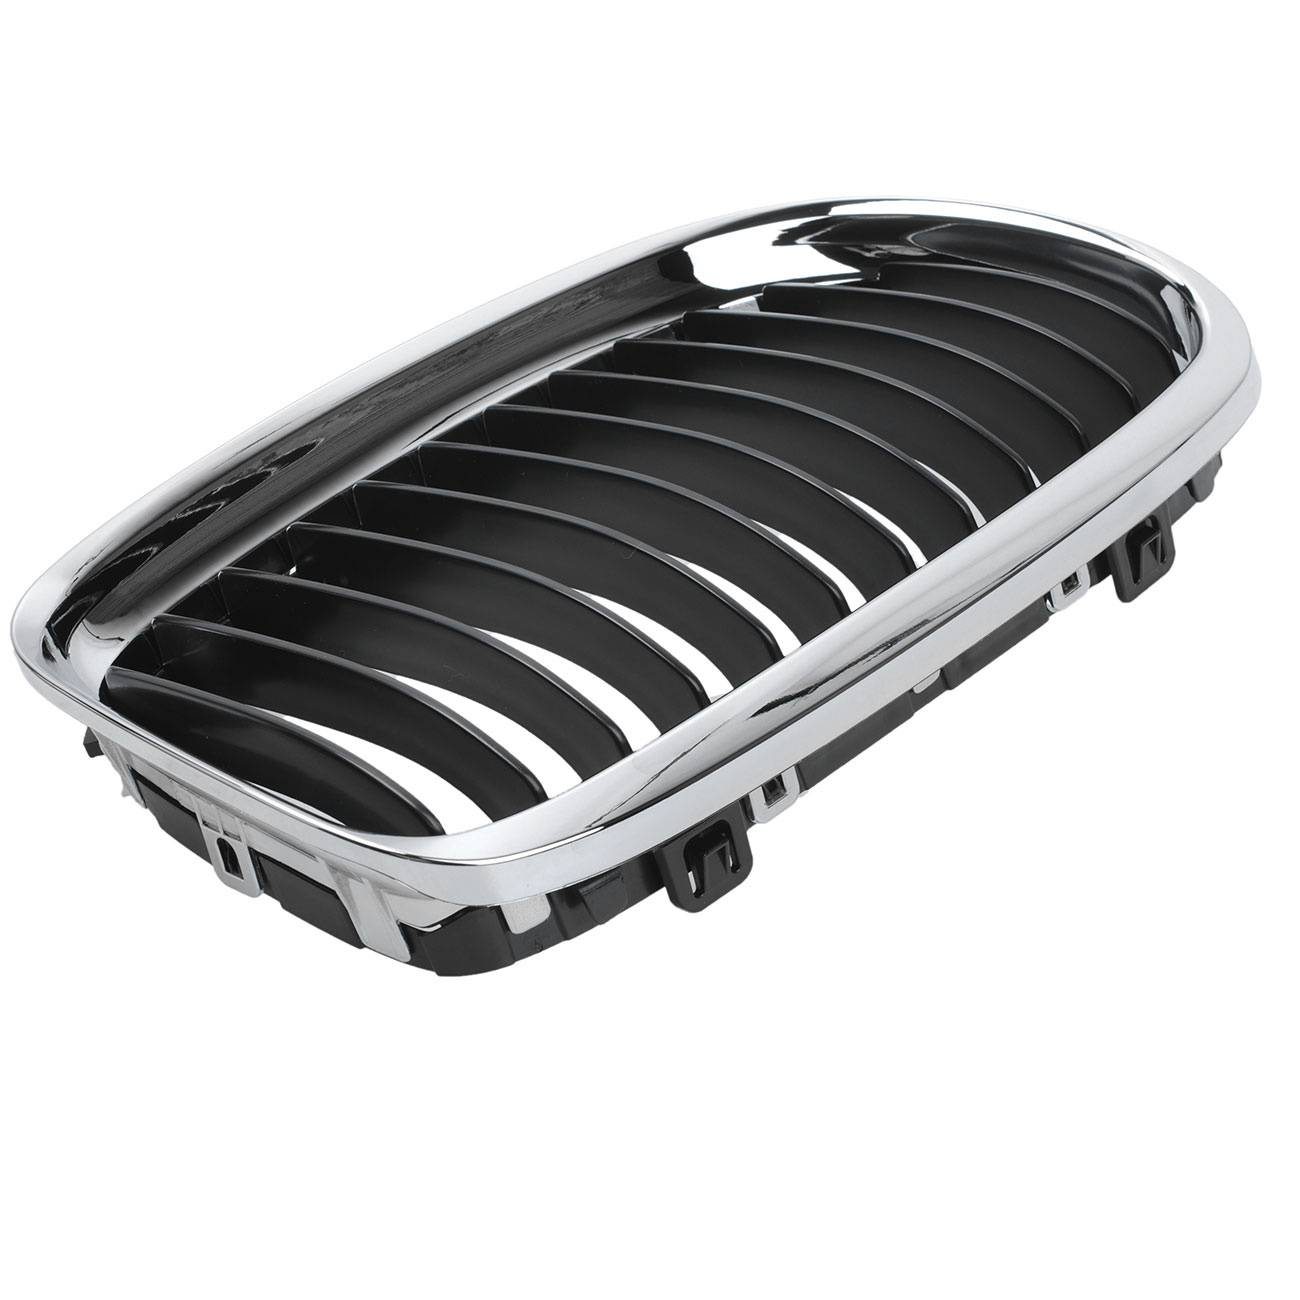 Bapmic-Set-Grill-Kidney-Grill-Left-Right-for-BMW-E90-320d-325-330-335i thumbnail 3